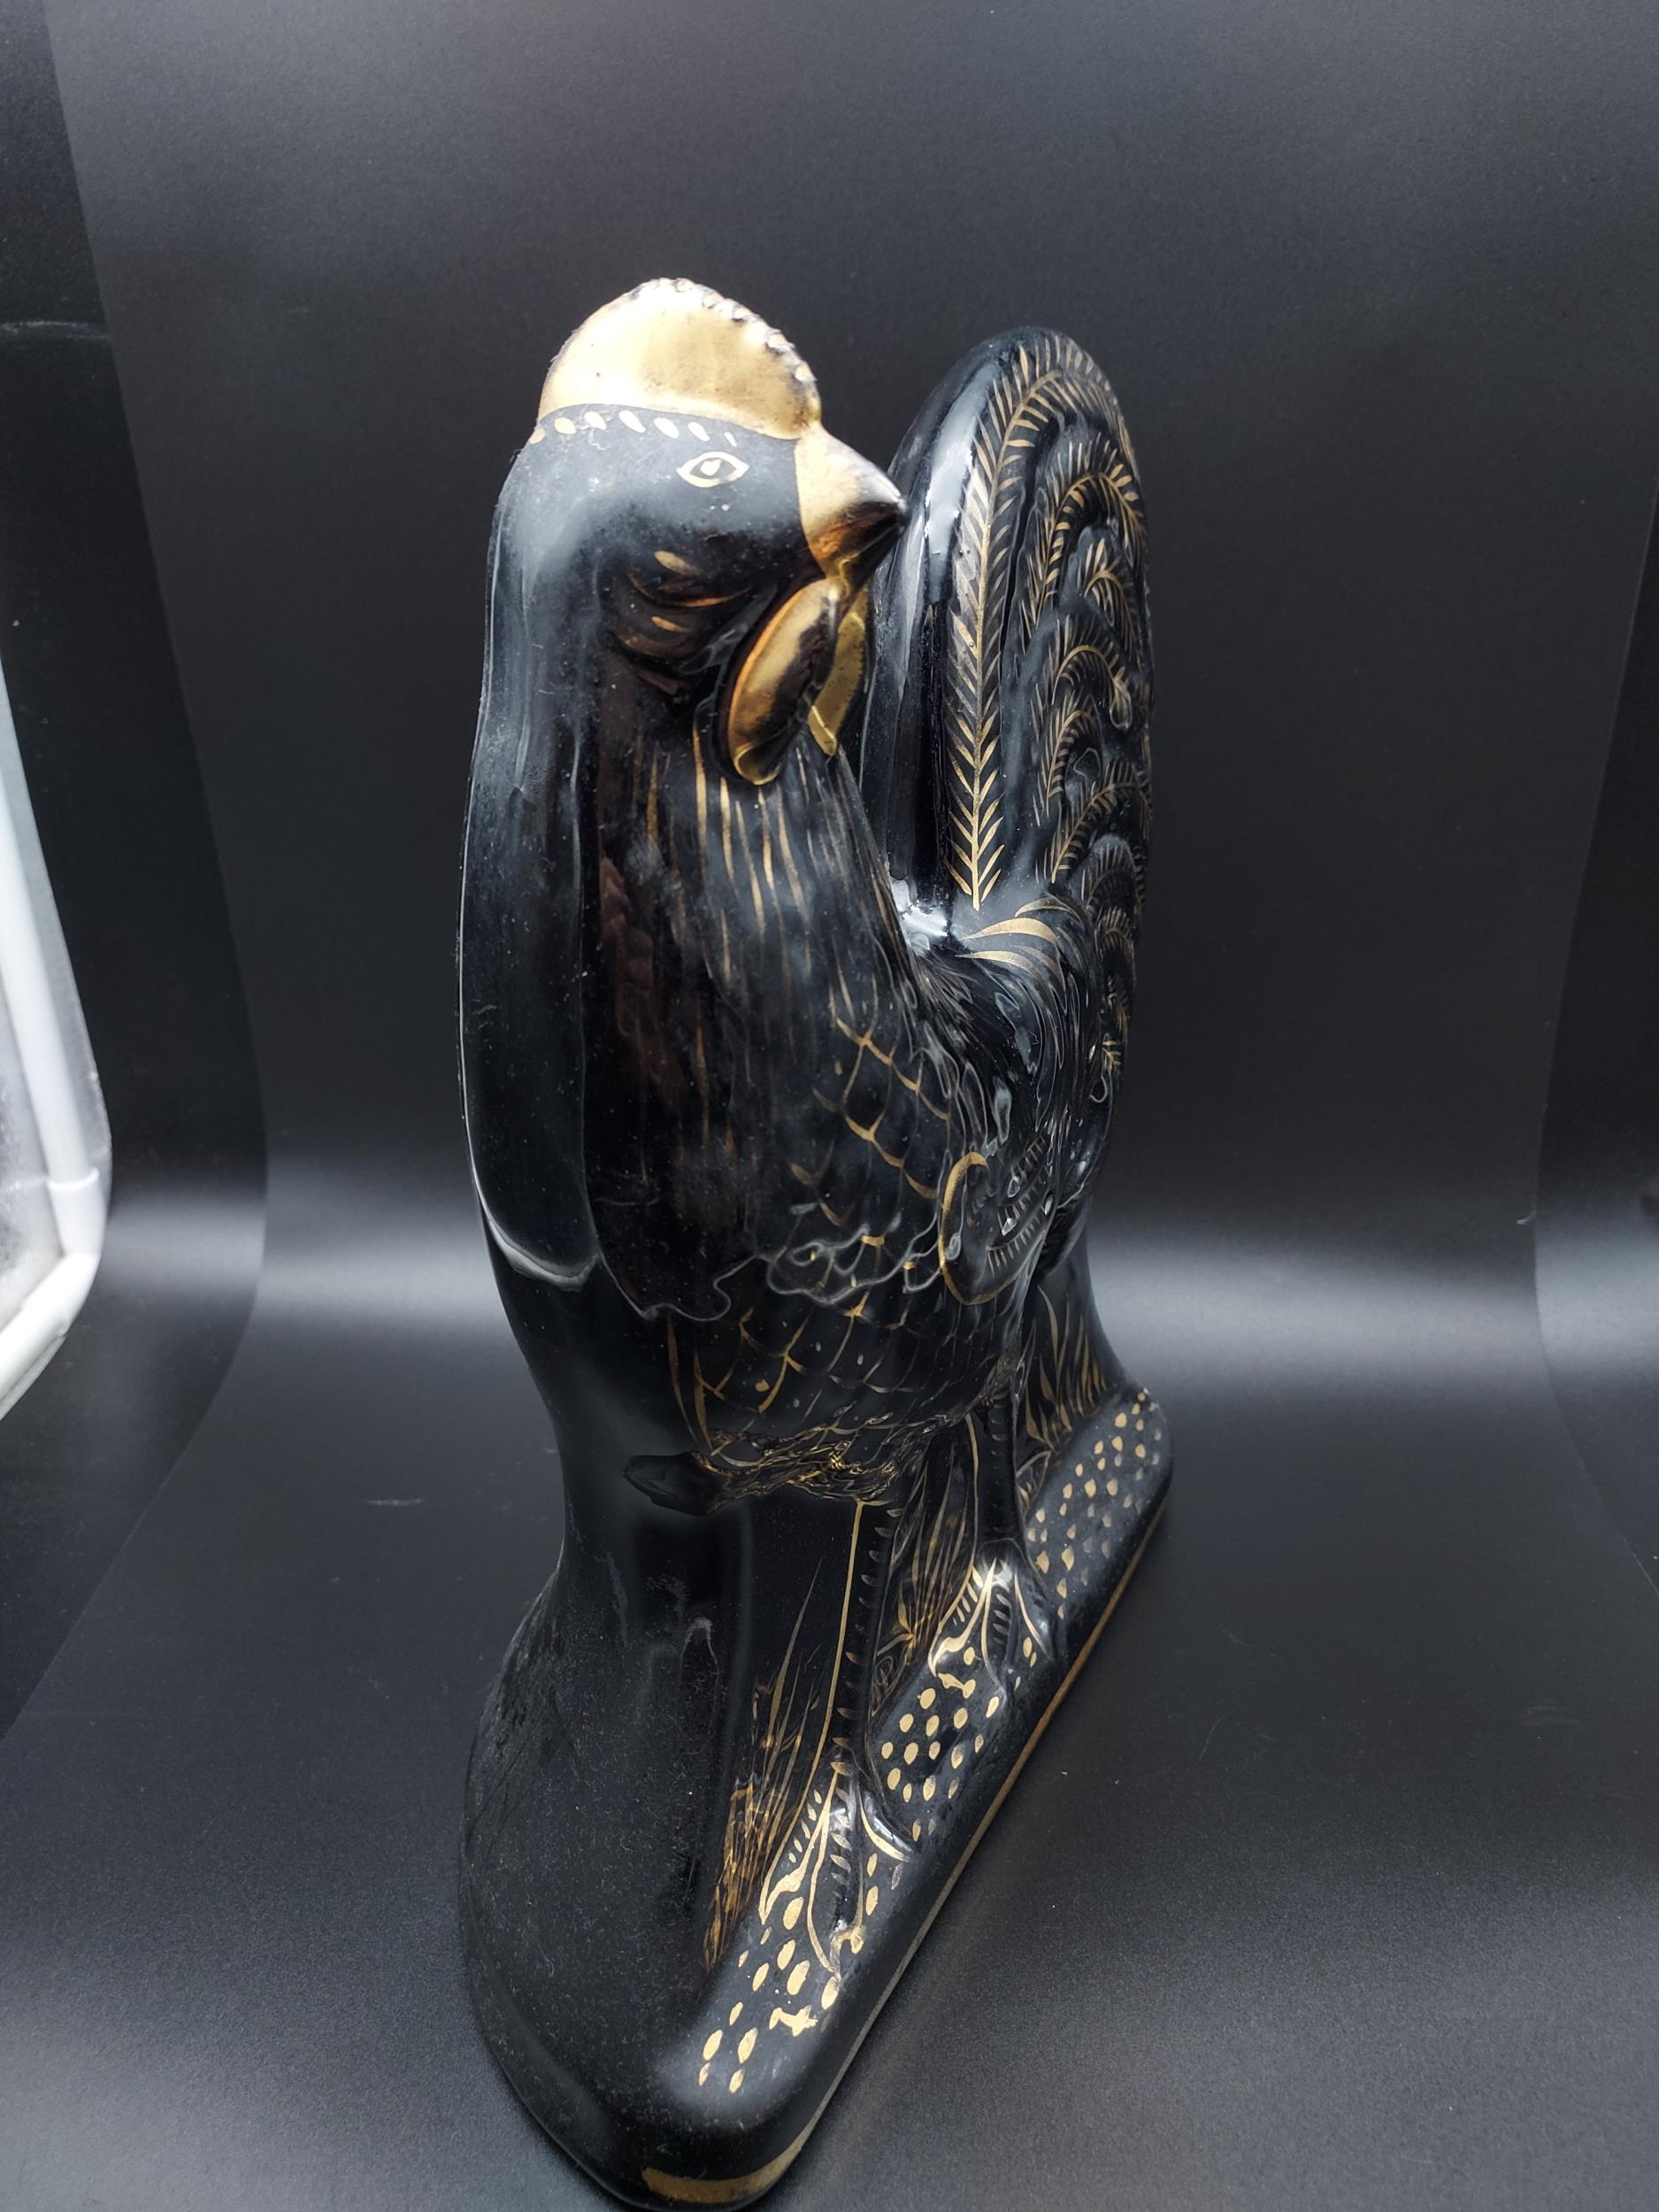 A Bo'ness pottery black lustre cockerel figurine. [31cm in height] - Image 2 of 4